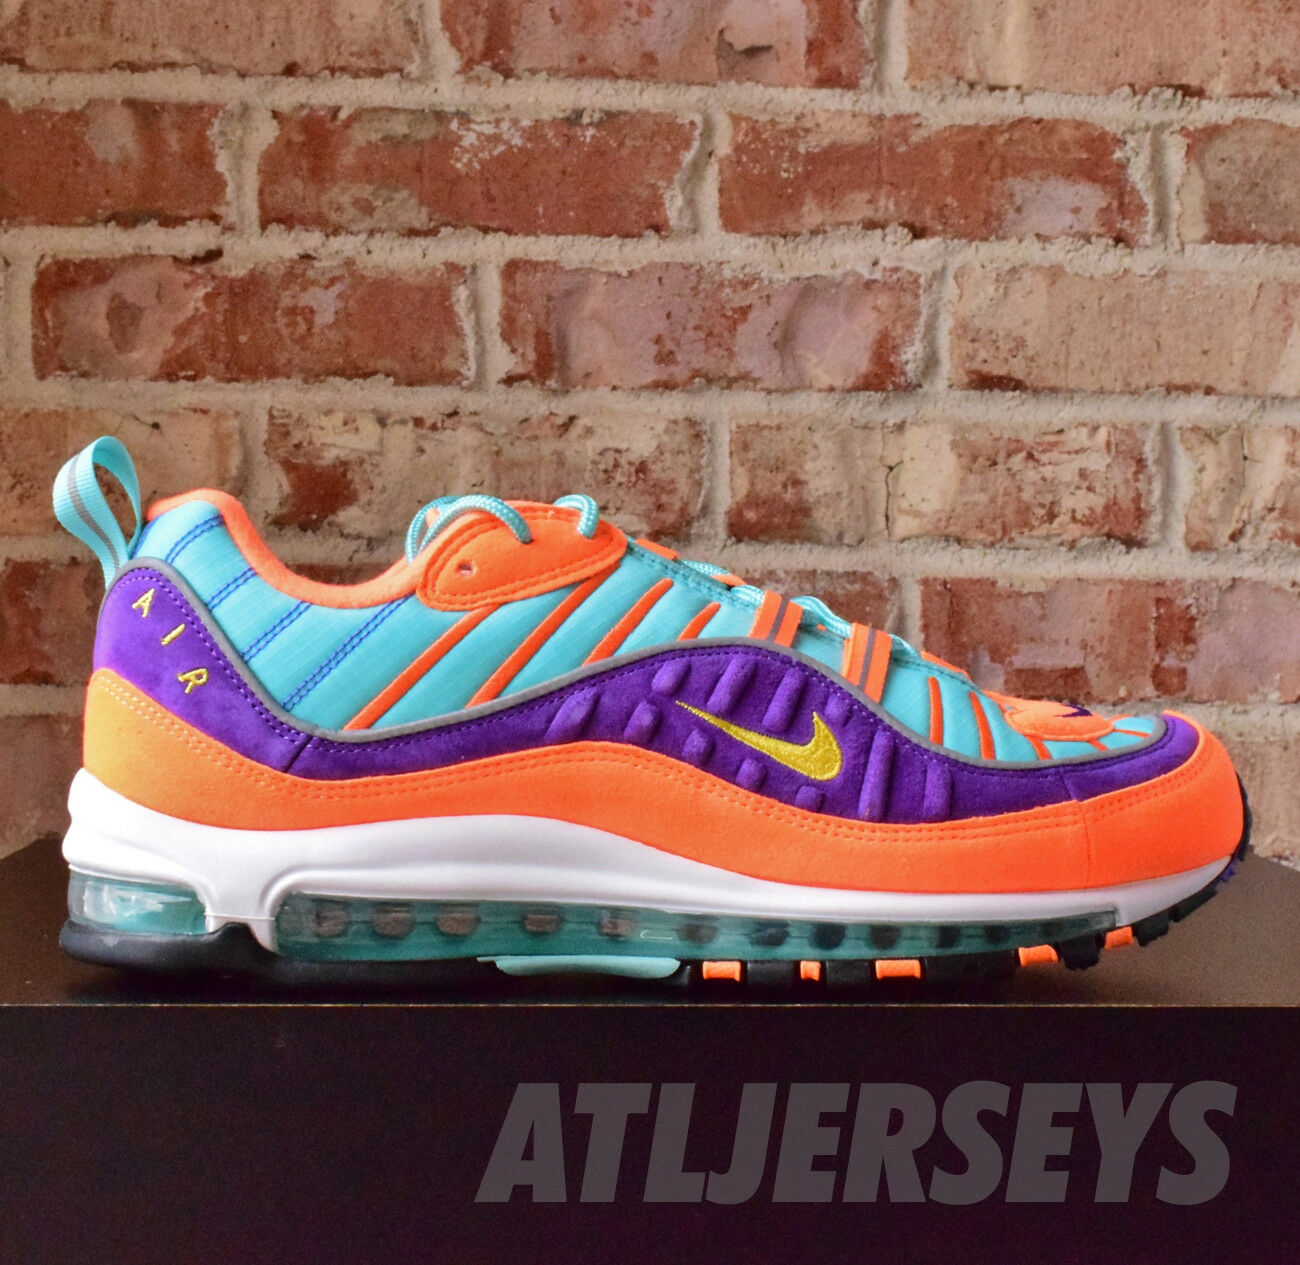 Nike Air Hyper Max 98 QS Cone Tour Yellow Hyper Air Grape 924462-800 ⭐️⭐️⭐️⭐️⭐️ 88968c